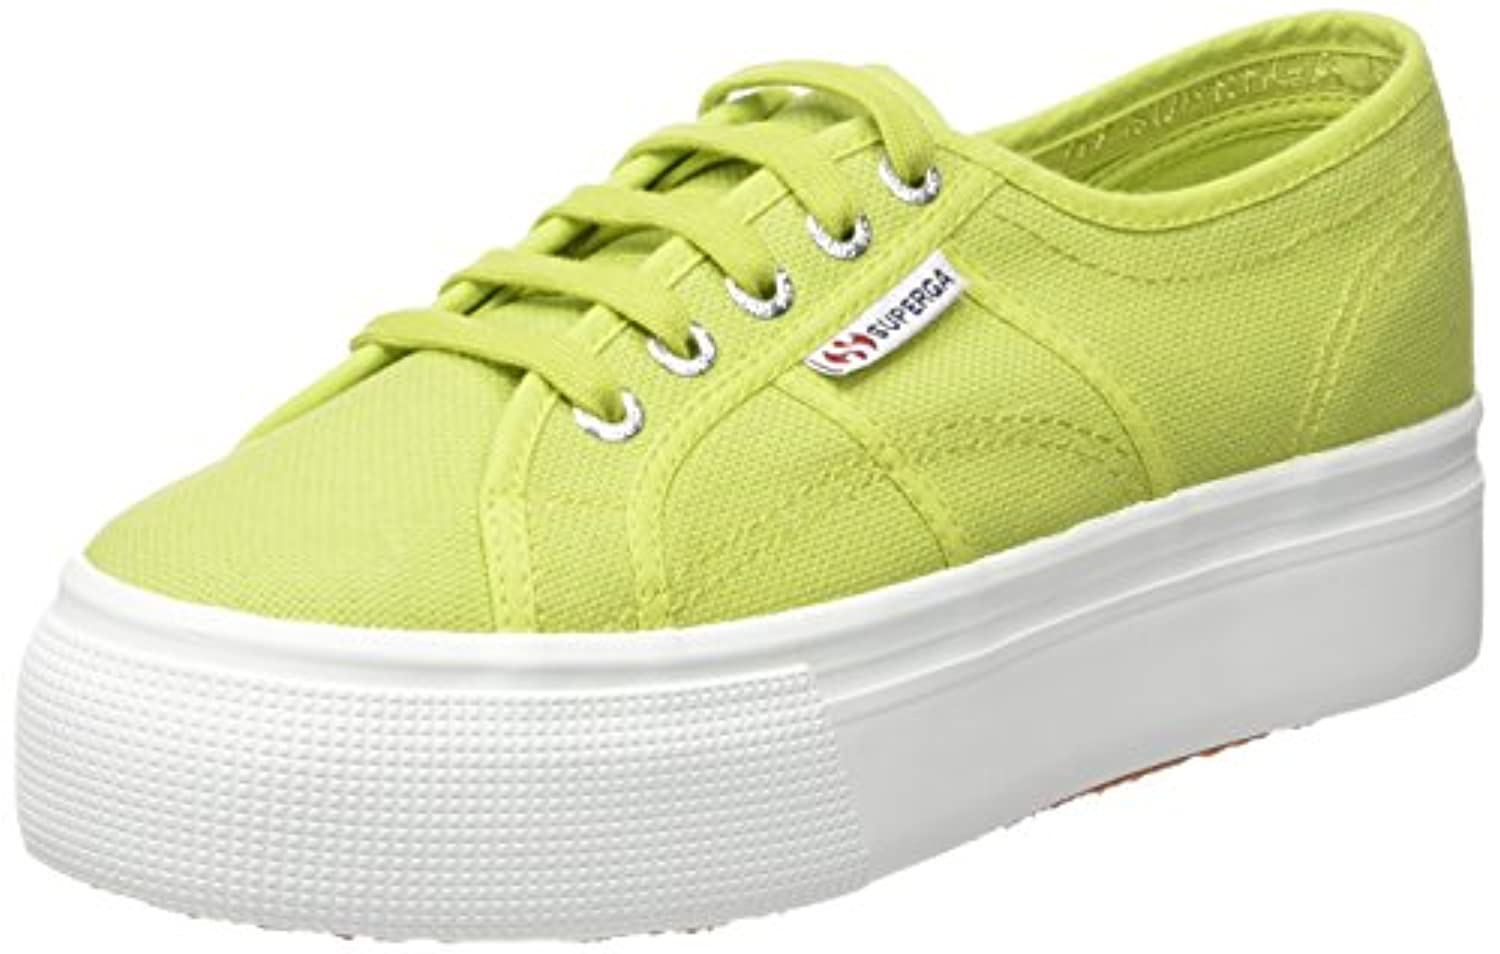 Superga 2790 Linea Up Down, Unisex Adults' Low-Top Sneakers, Blue (933 Navy), 2.5 UK